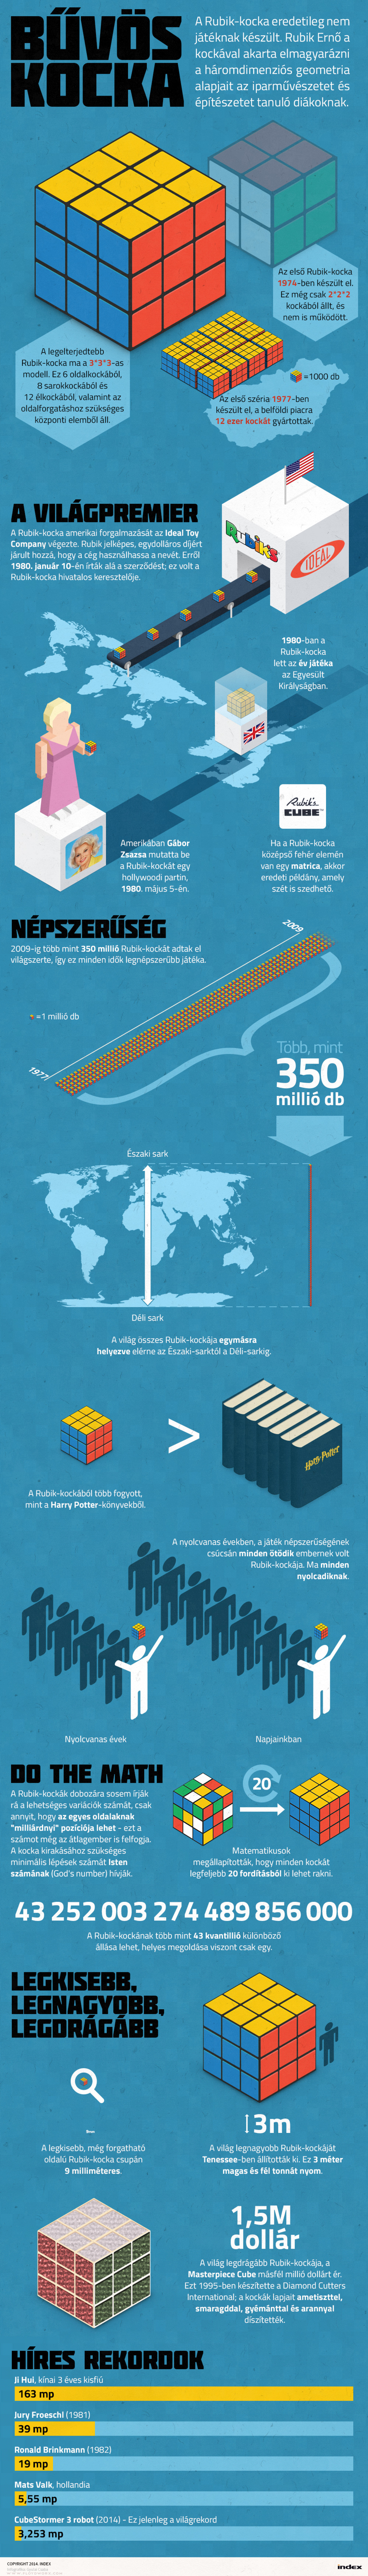 Rubik's Cube - infographic Infographic